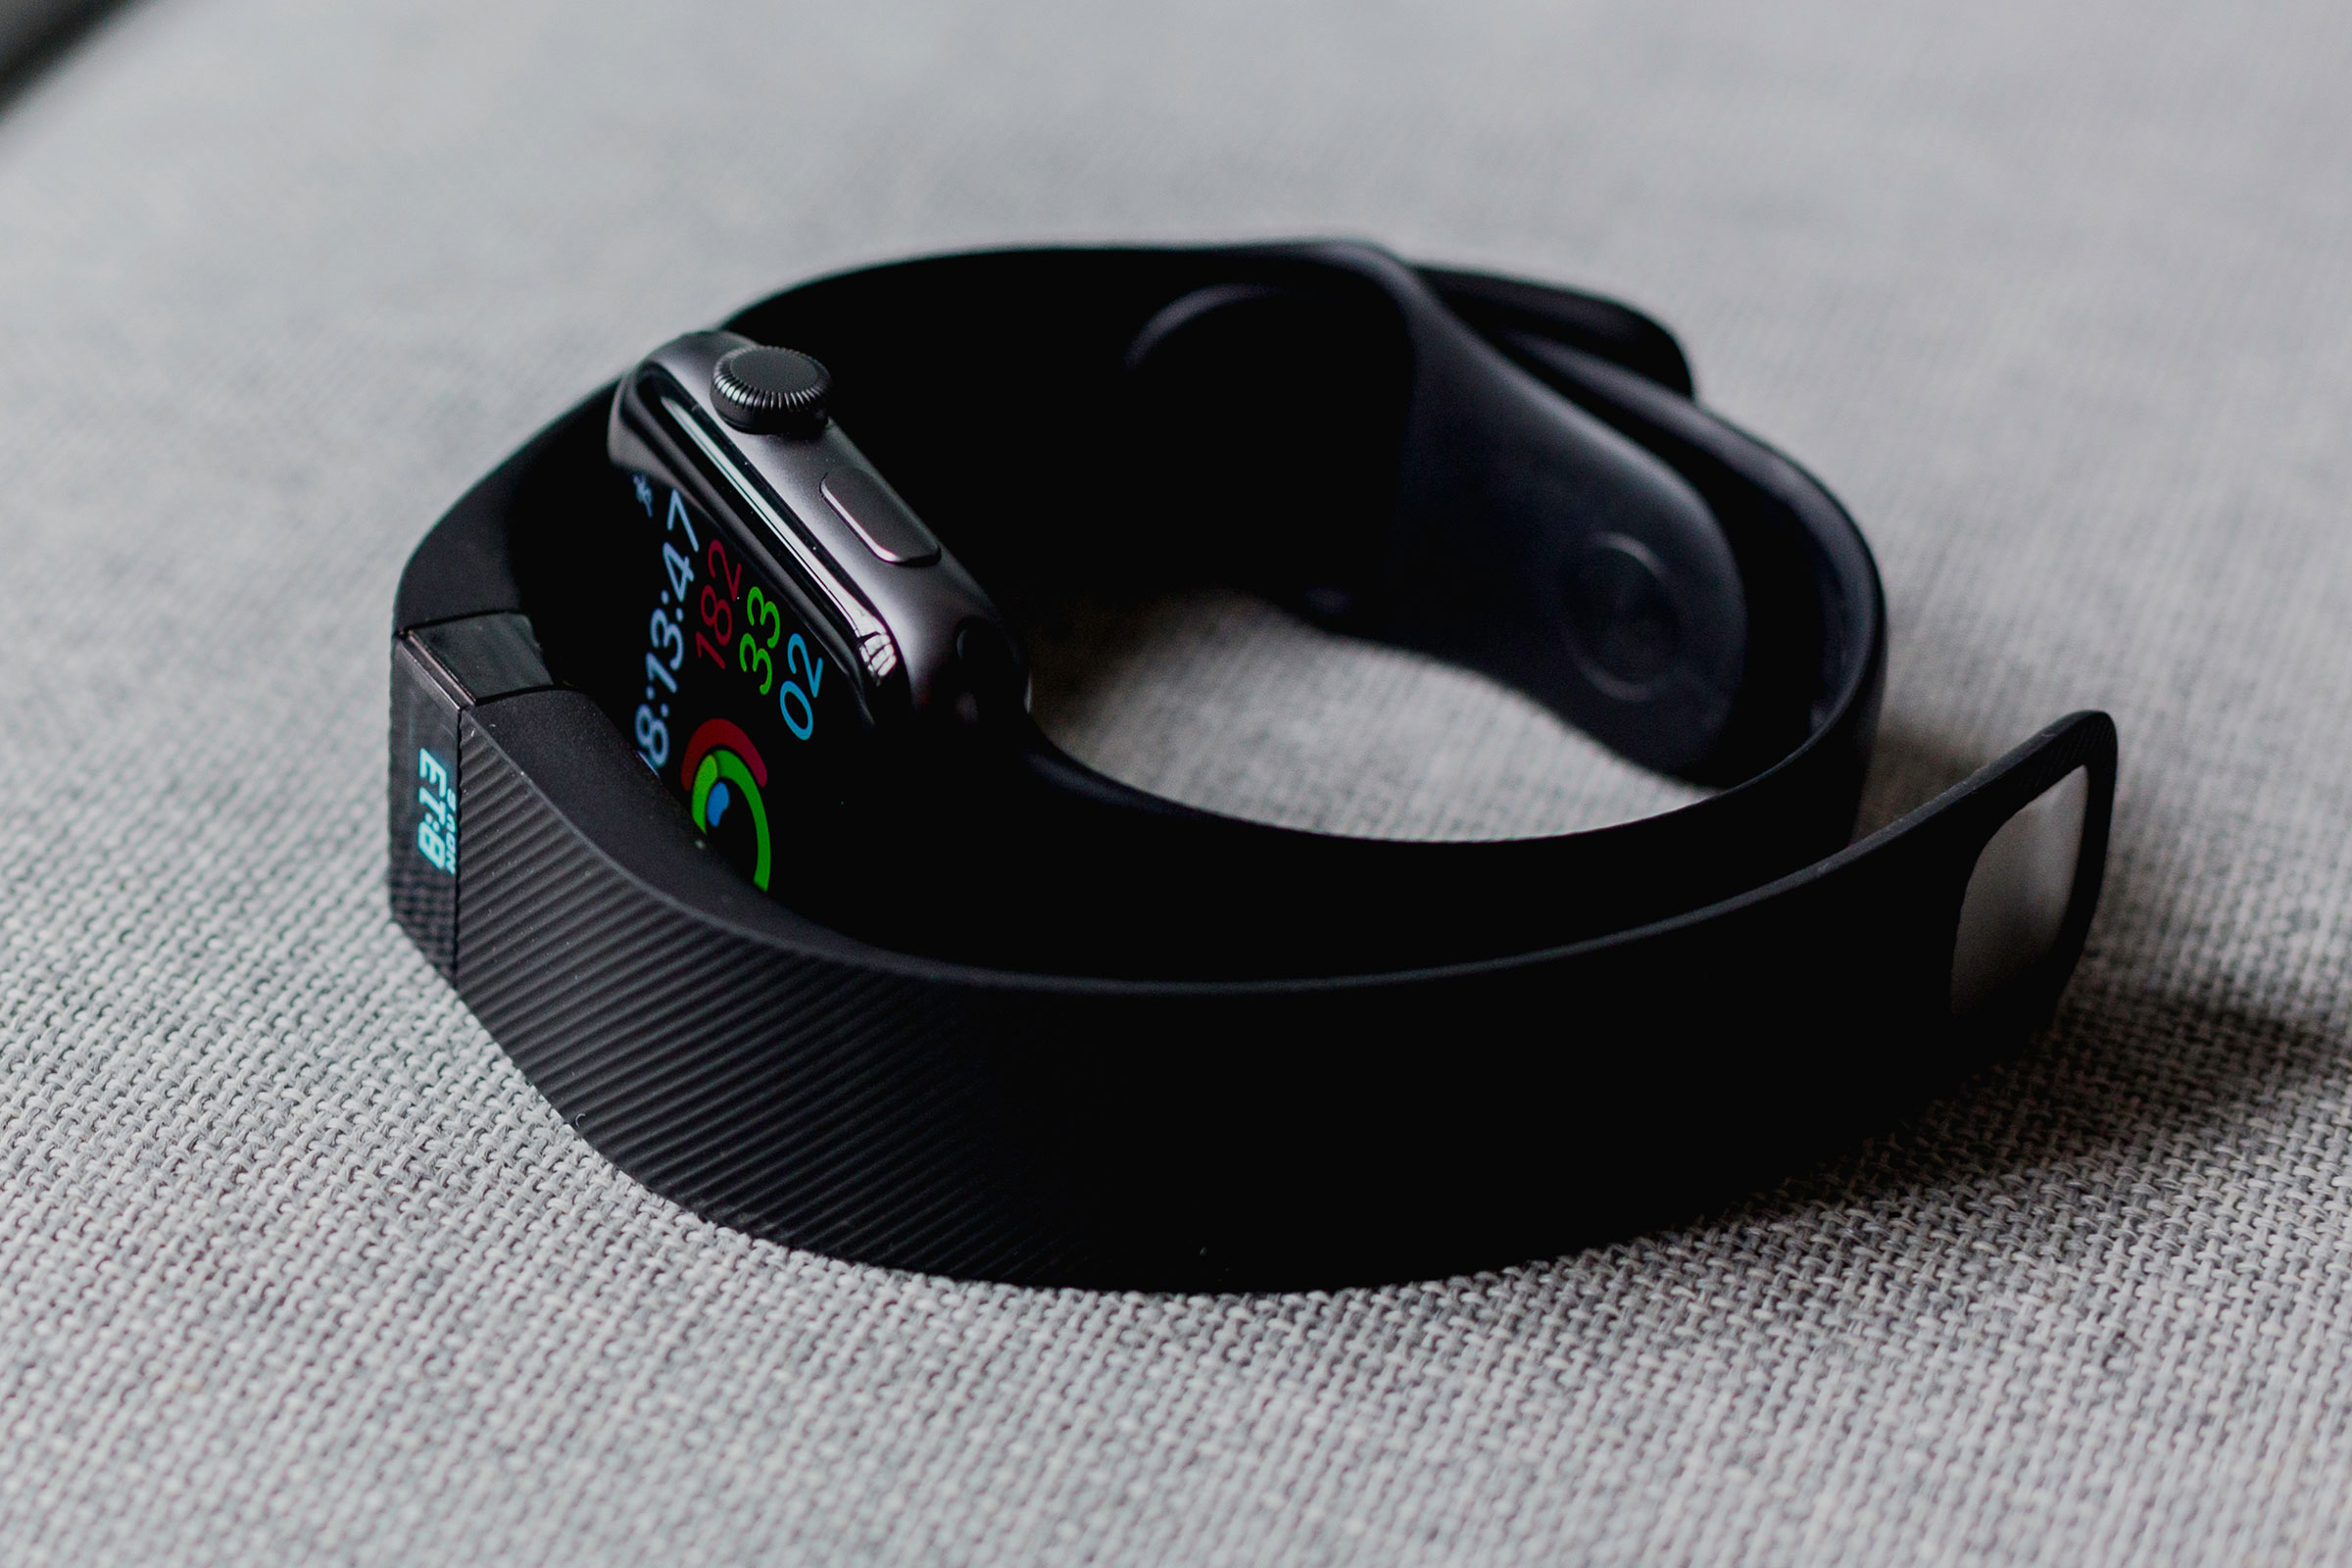 FitBit & Apple Watch